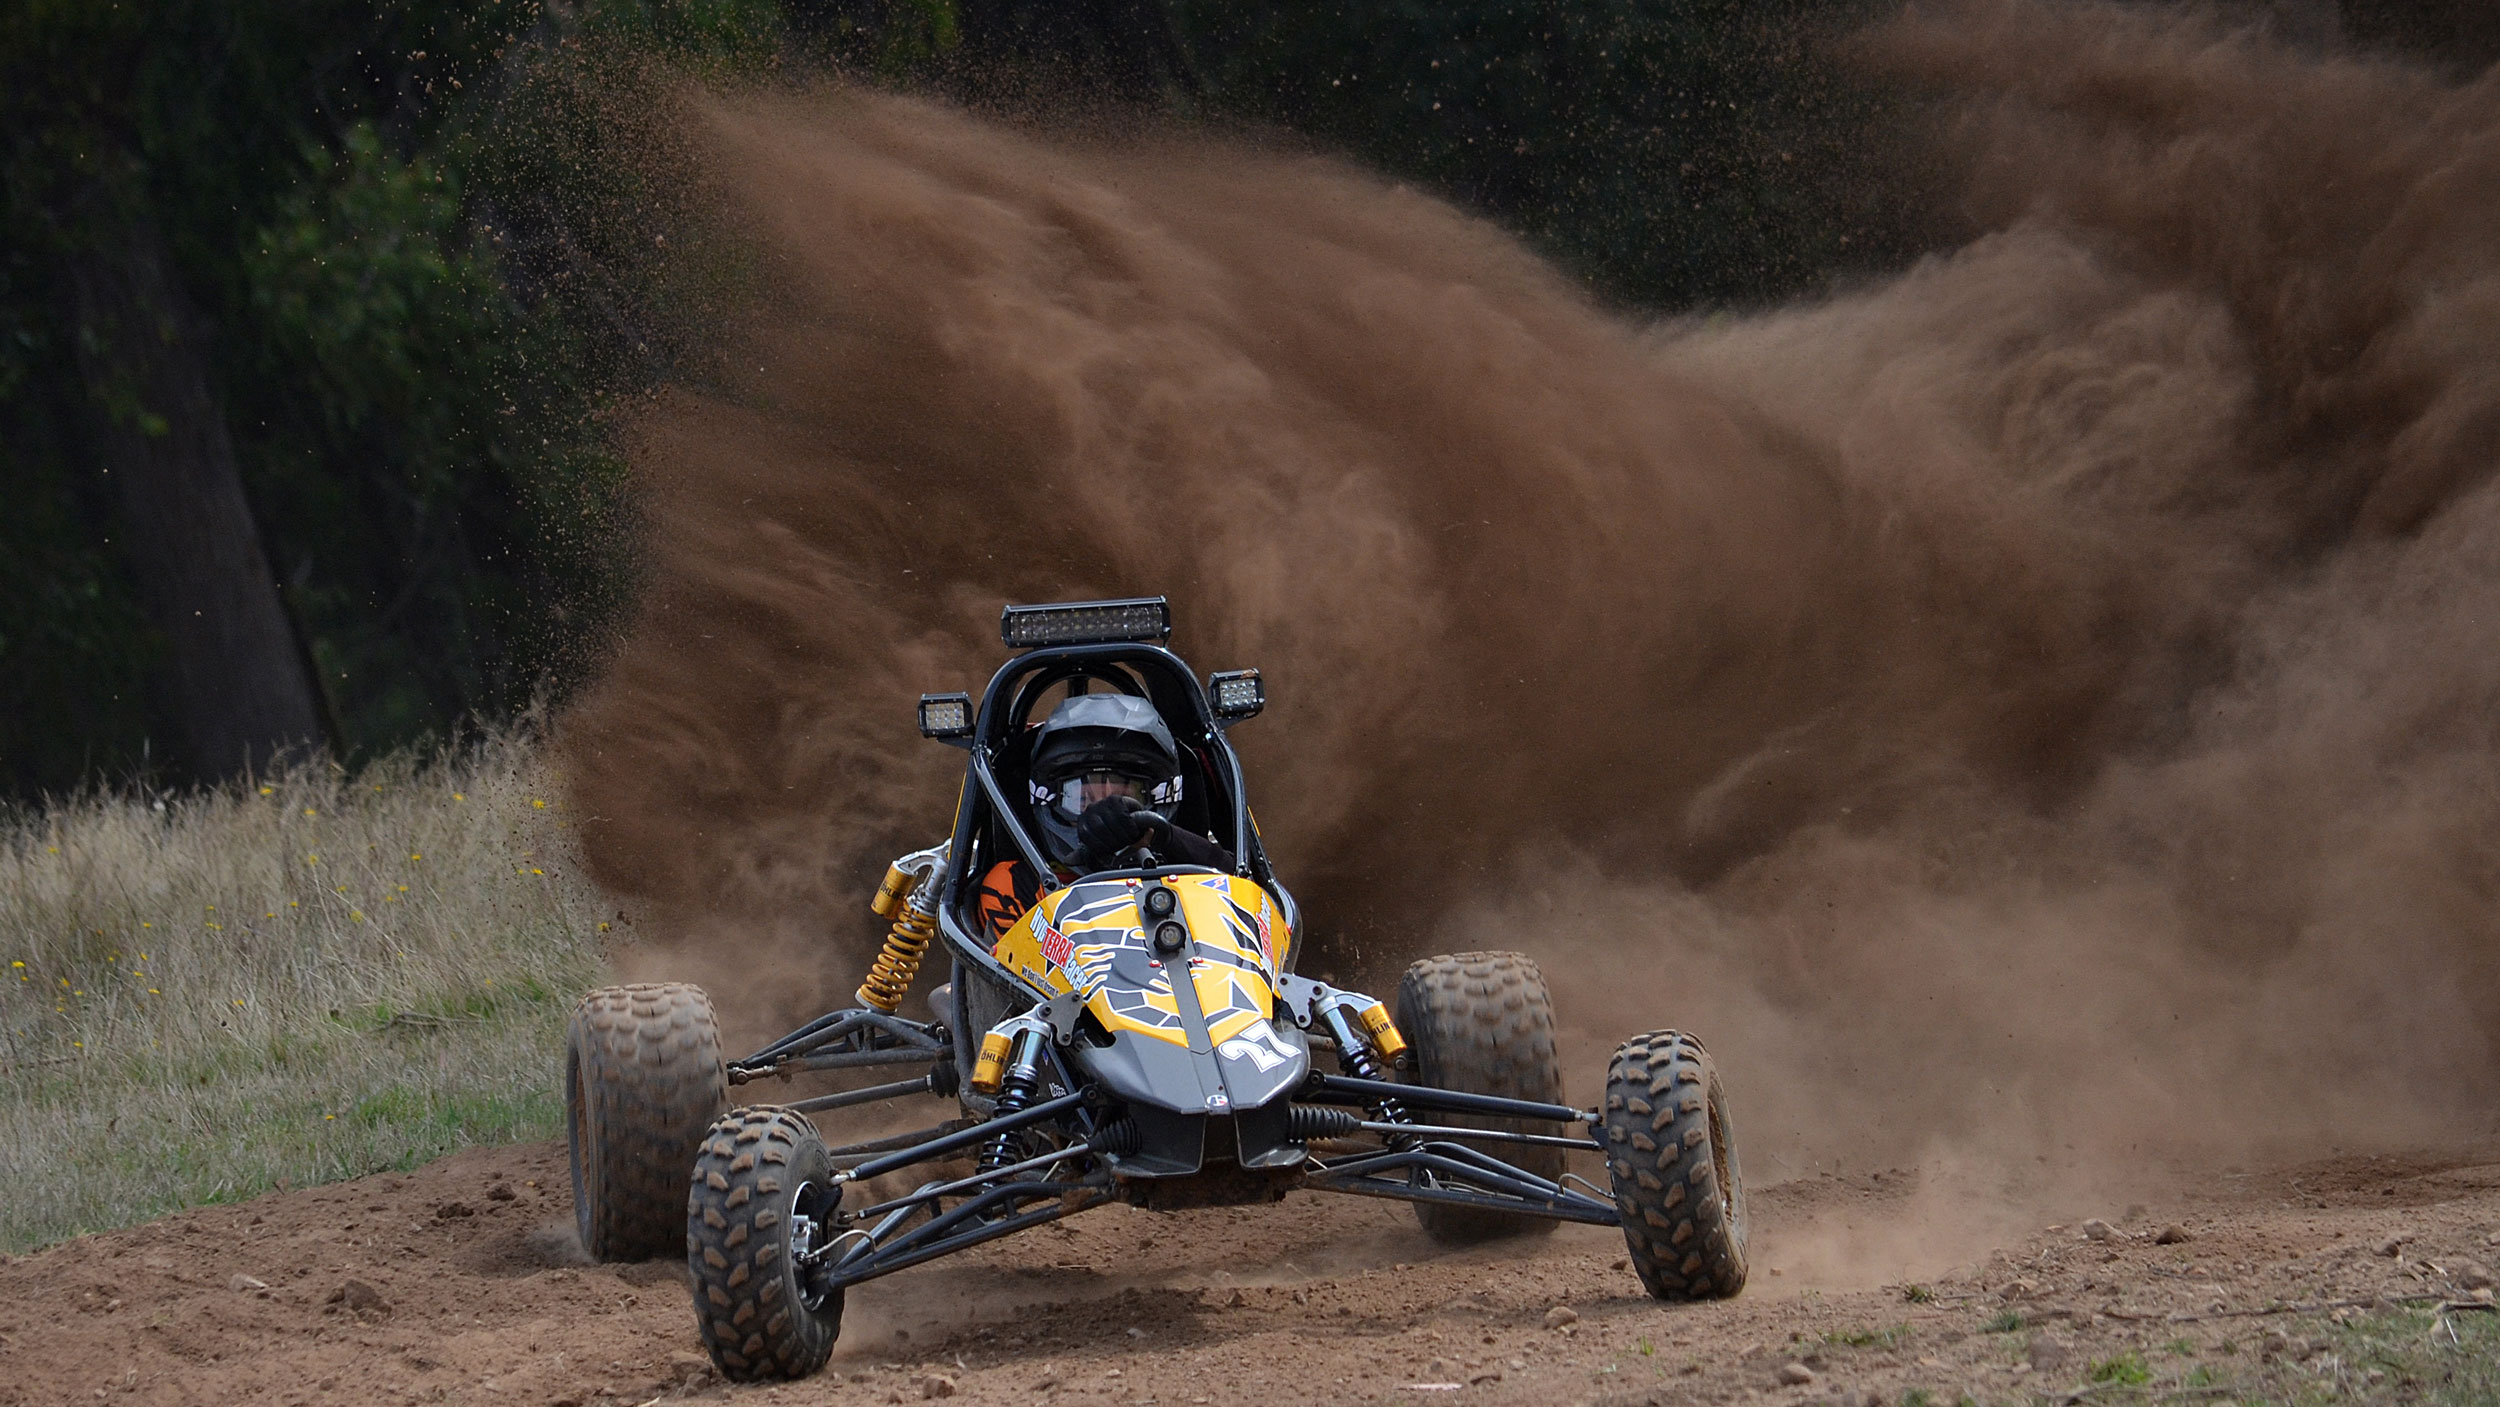 Buggy-Drift8-2500